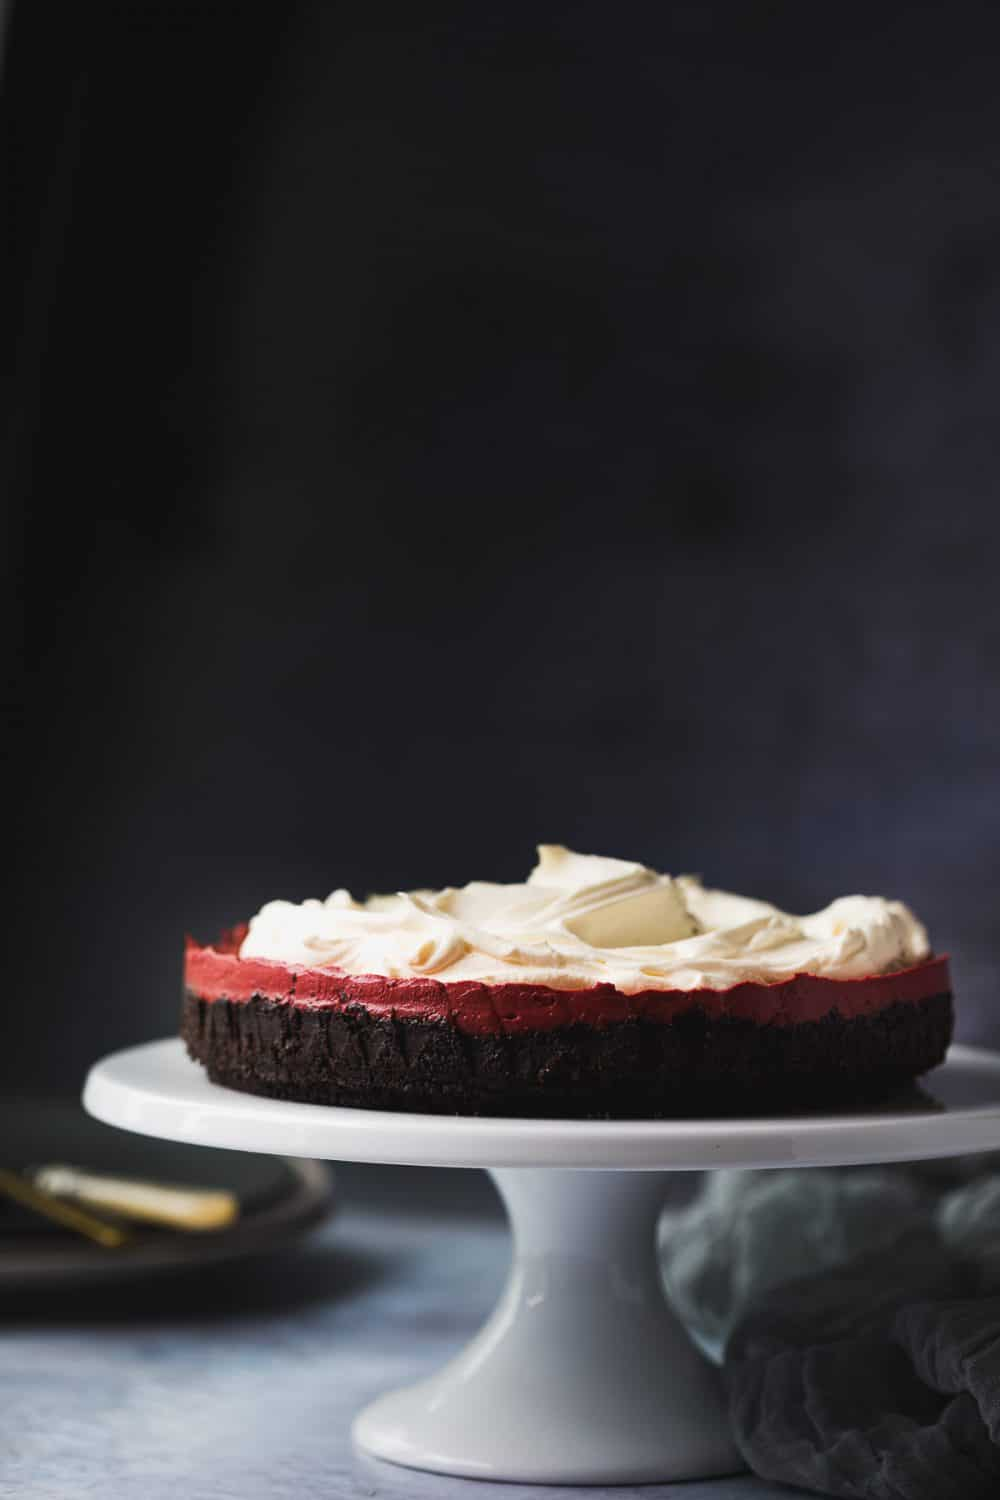 A no bake red velvet cheesecake on a white cake stand.